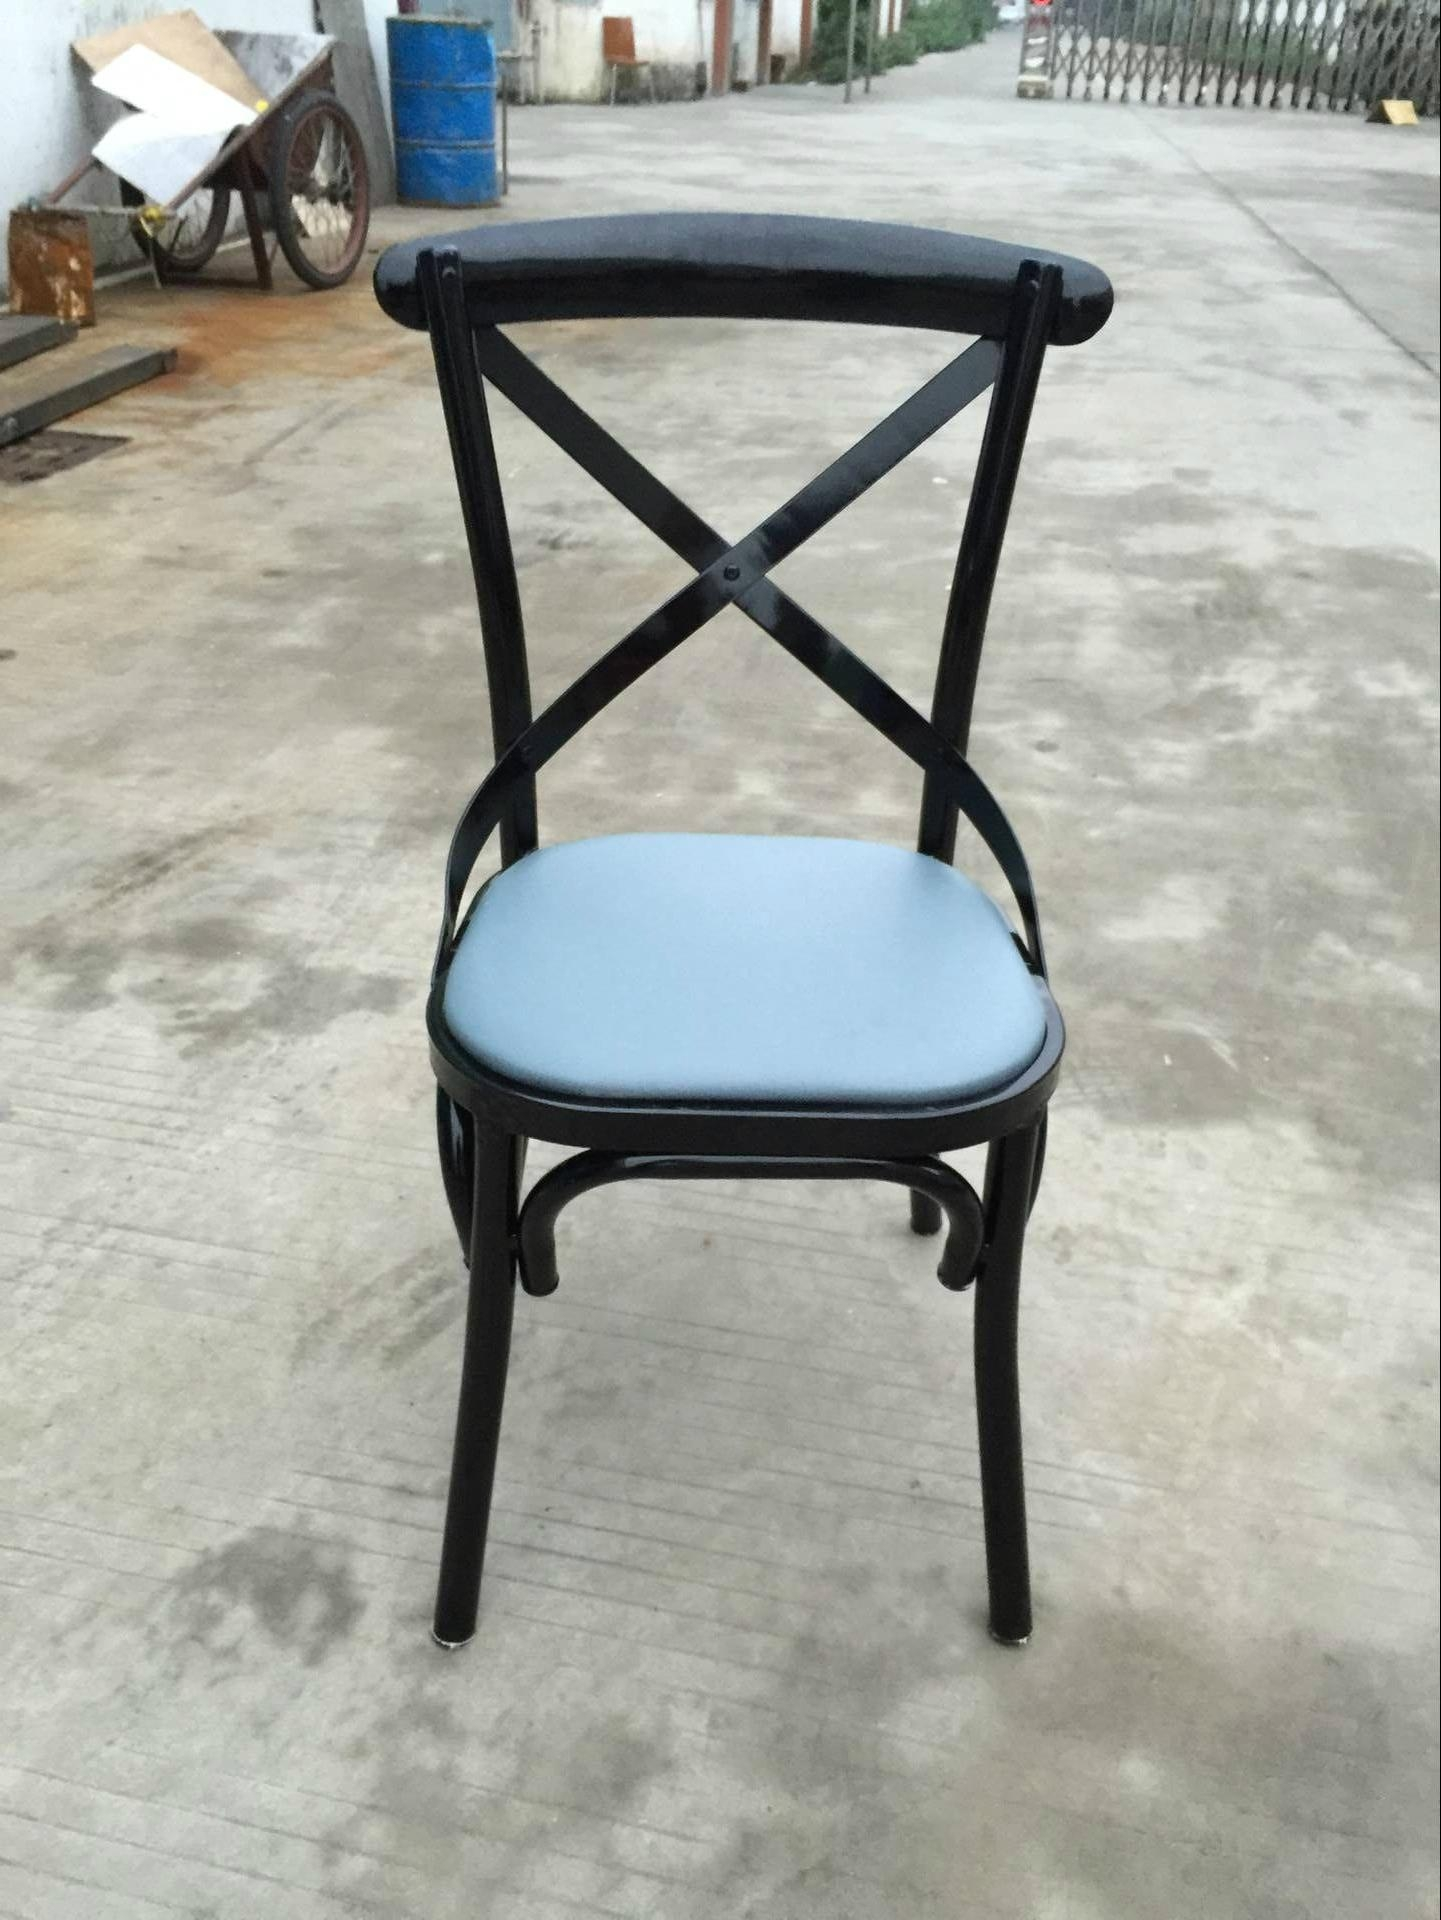 x back dining chairs. Sprig Bar Bistro Black Metal X Back Industrial Design Dining Chair 1 Chairs